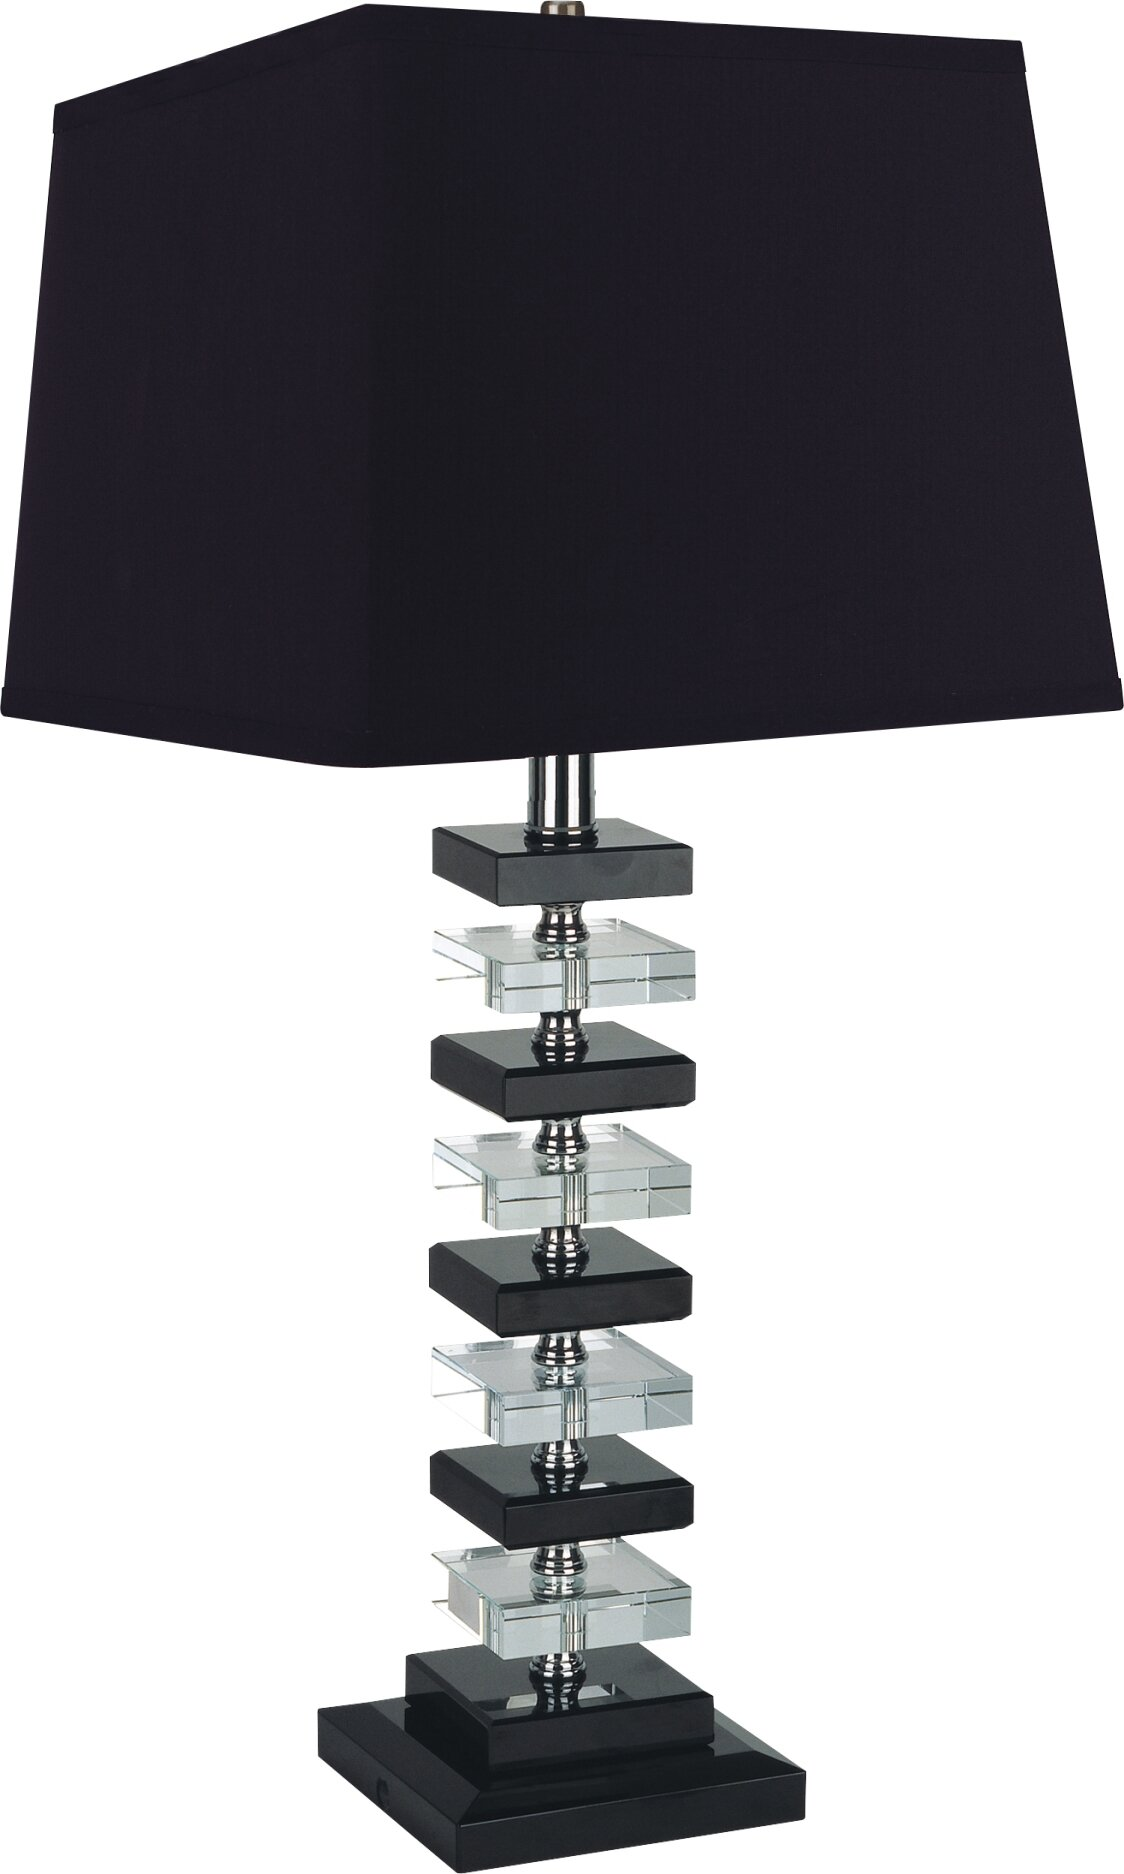 milton green star raiden 27 table lamp set set of 2 ebay. Black Bedroom Furniture Sets. Home Design Ideas